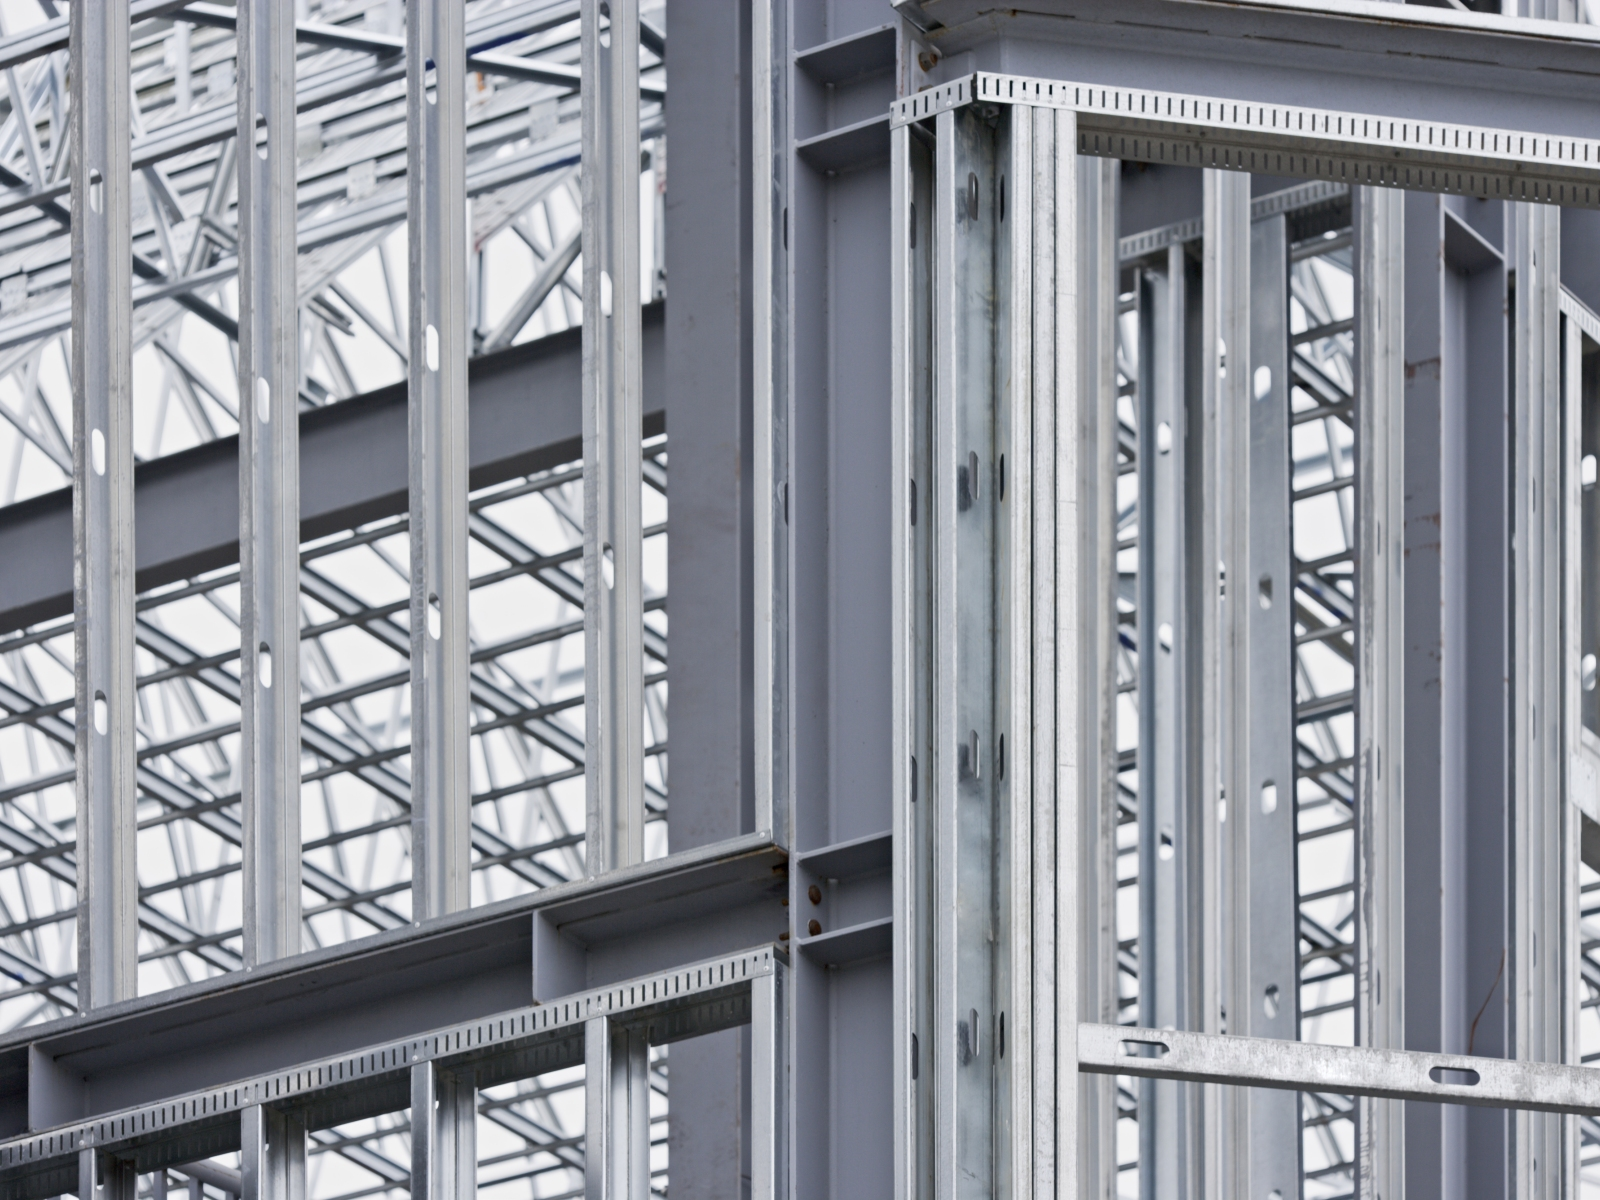 SFS (Steel Framing Systems)